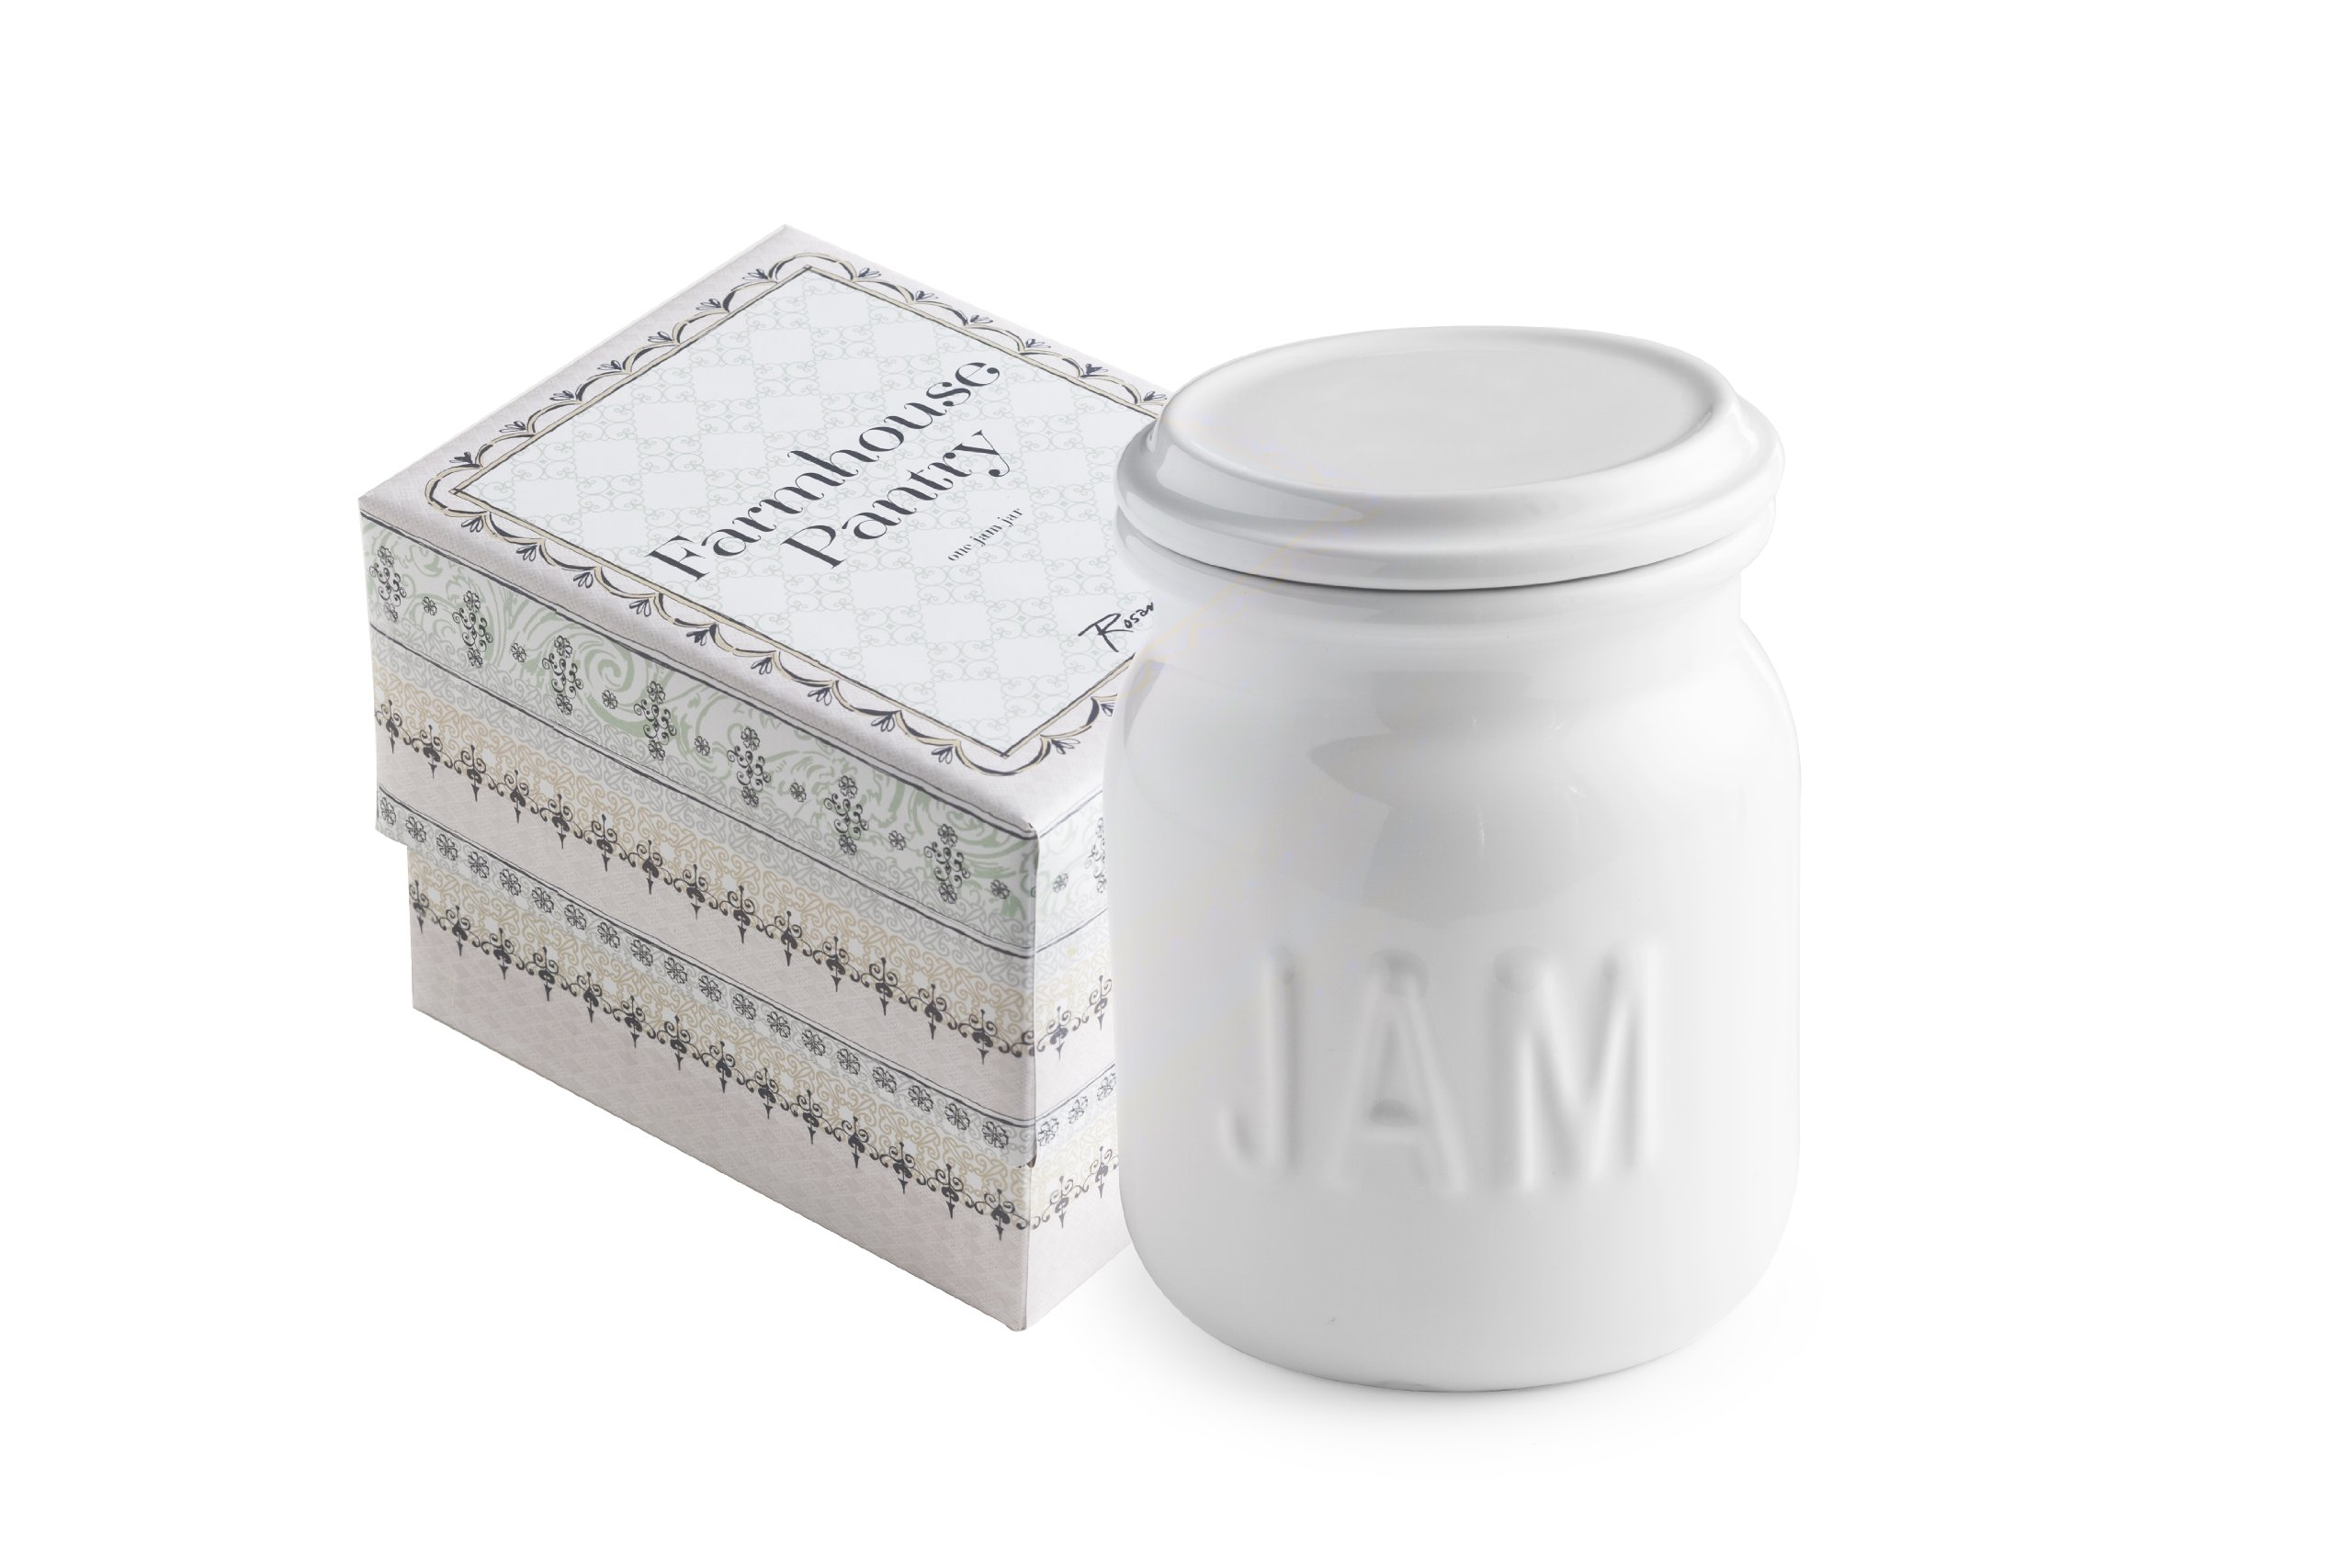 Rosanna 94974 Farmhouse Pantry Jam Jar, White